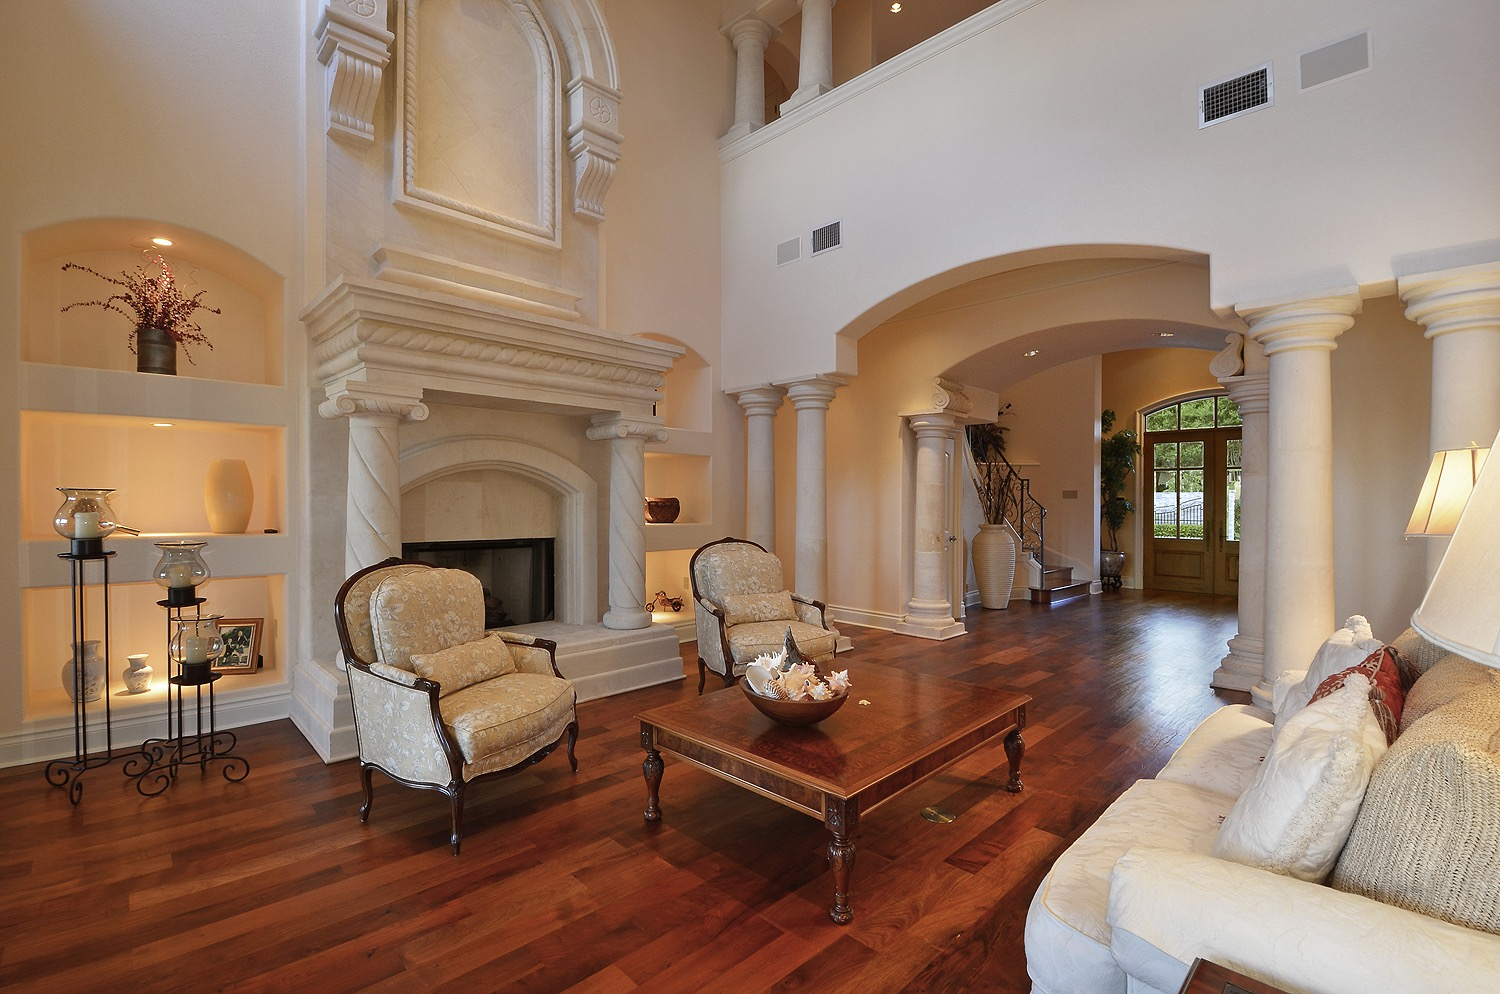 Classic Mediterranean Living Room With Wooden Flooring And White Sofa (Image 1 of 25)